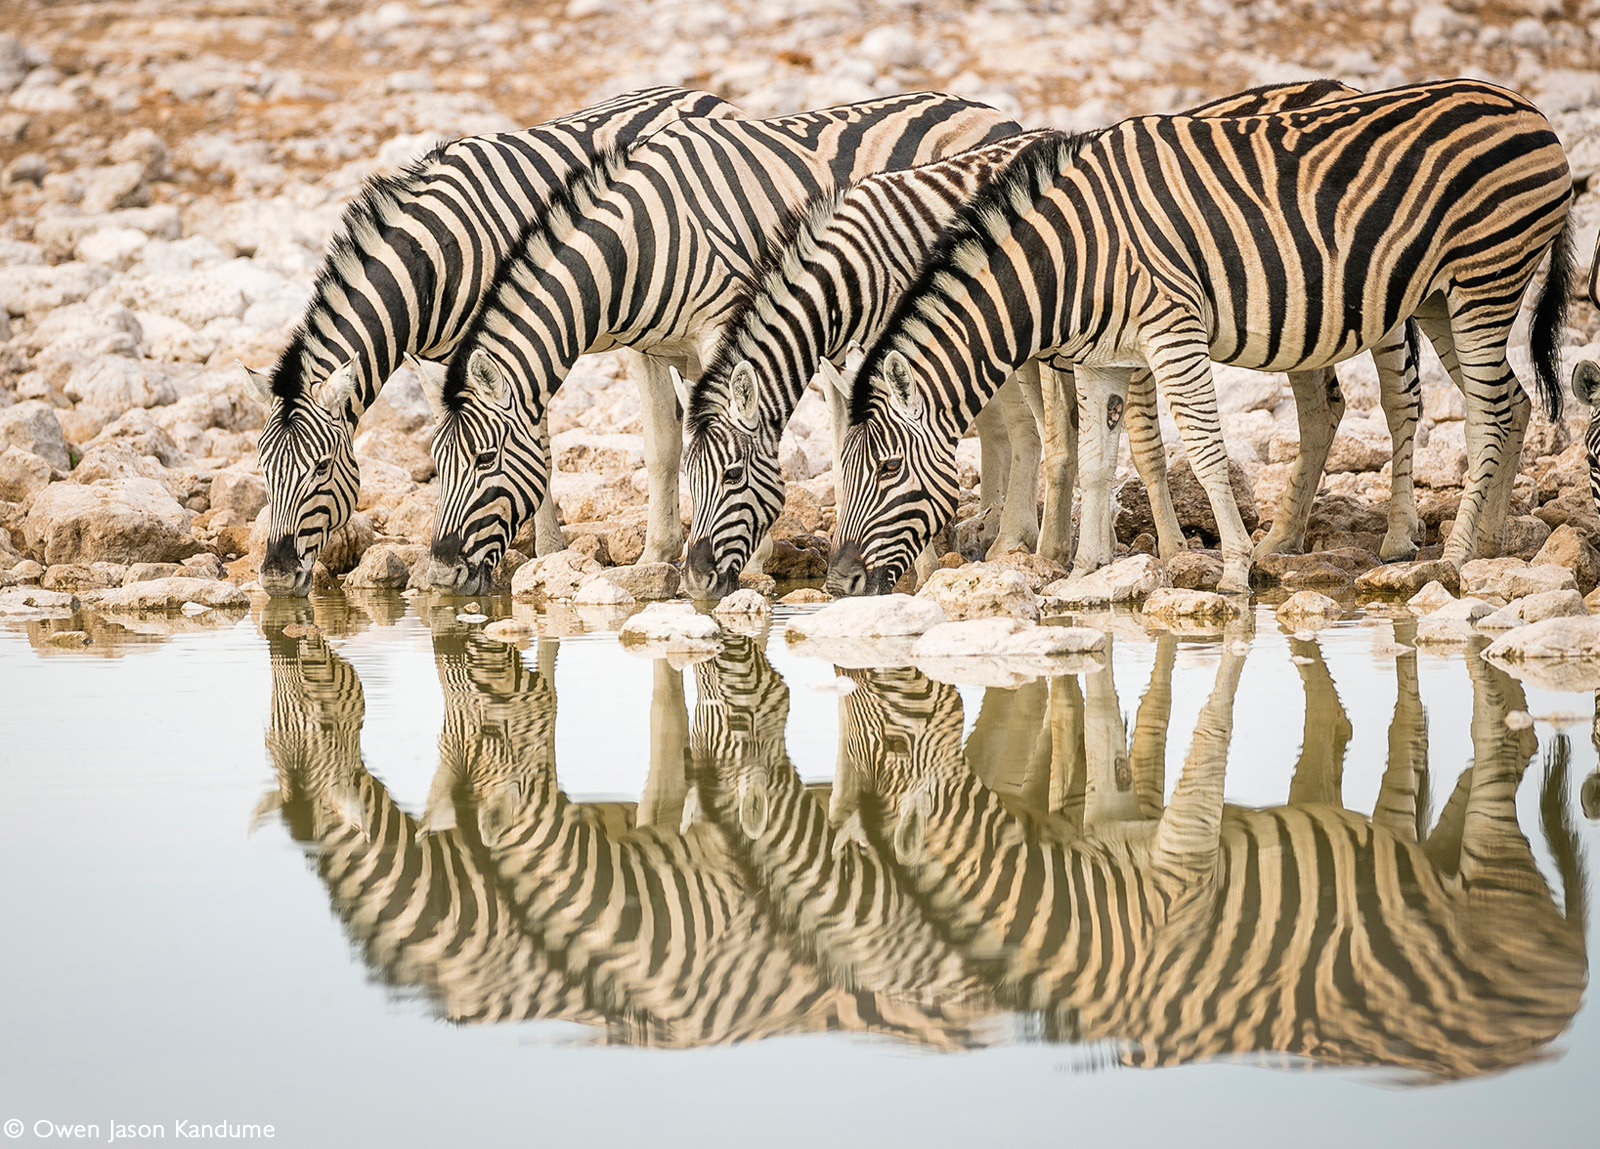 Zebra drinking in the early morning at Okaukuejo waterhole. Etosha National Park, Namibia © Owen Jason Kandume